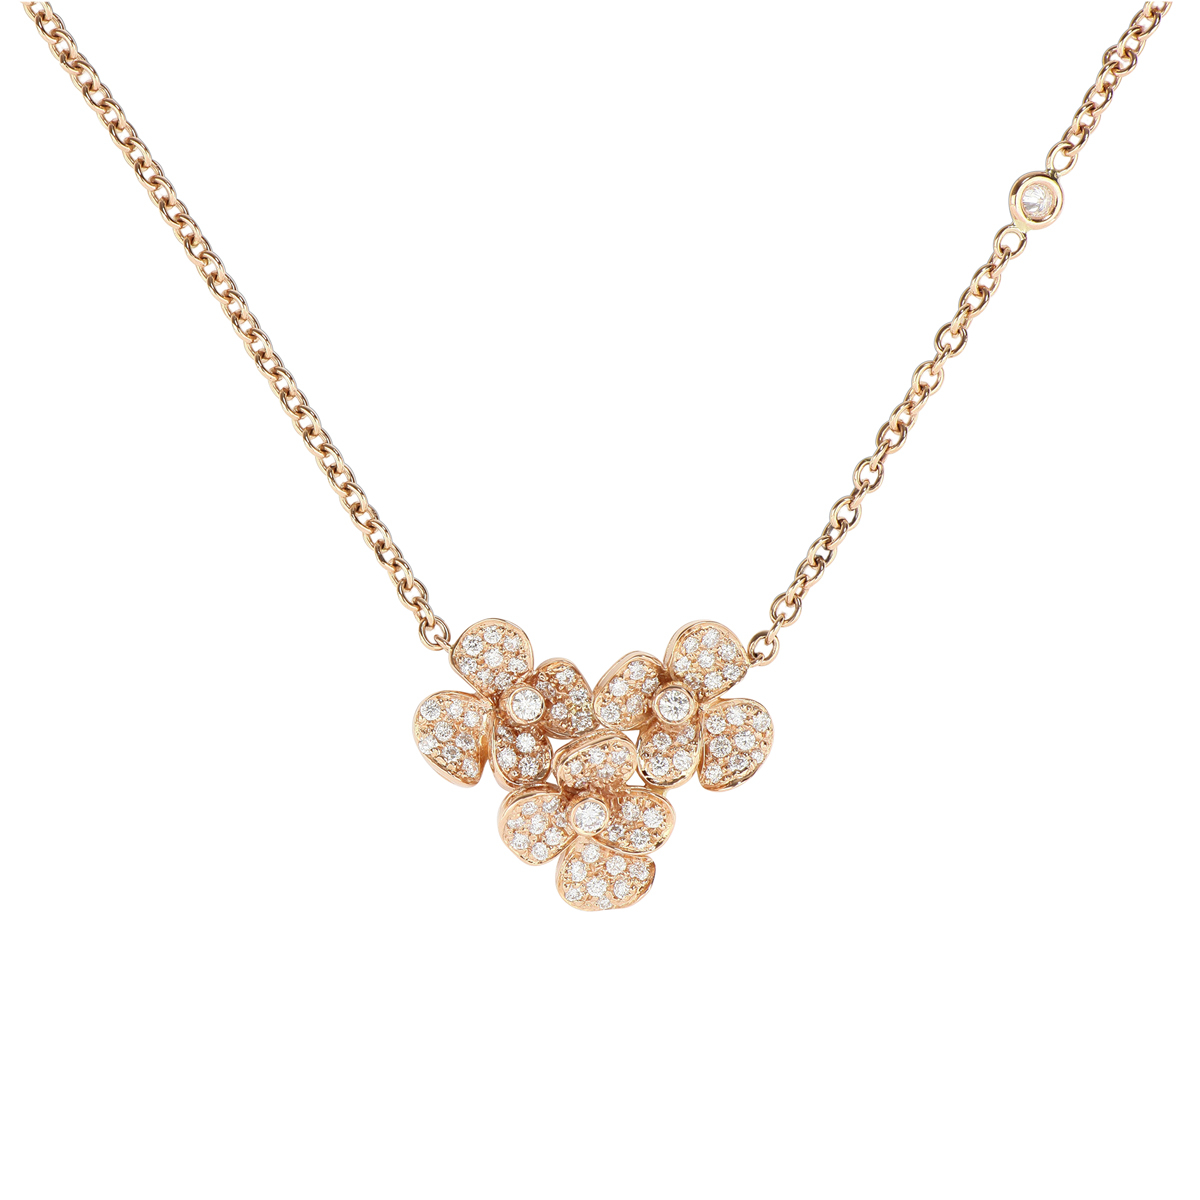 Red Gold and Diamond Flower Bouquet Necklace